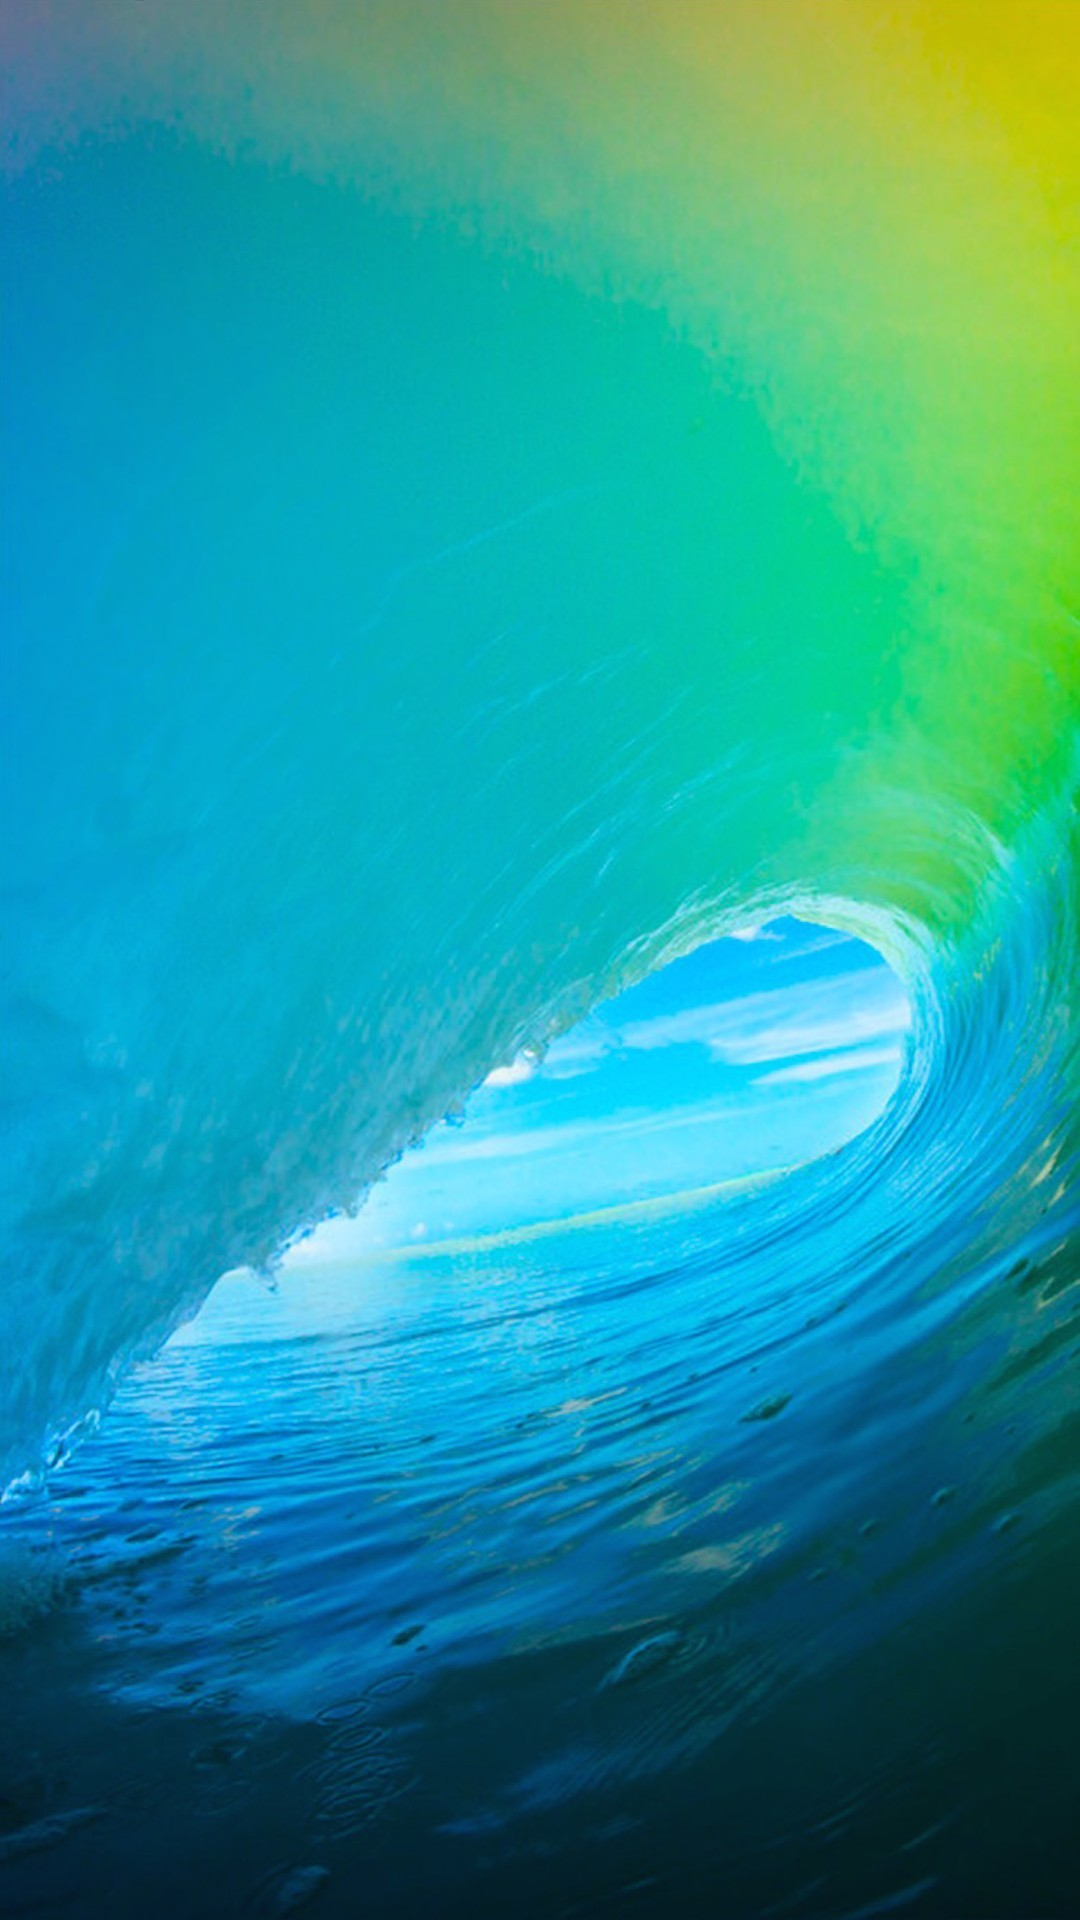 iOS 9 Colorful Surf Wave iPhone 6+ HD Wallpaper